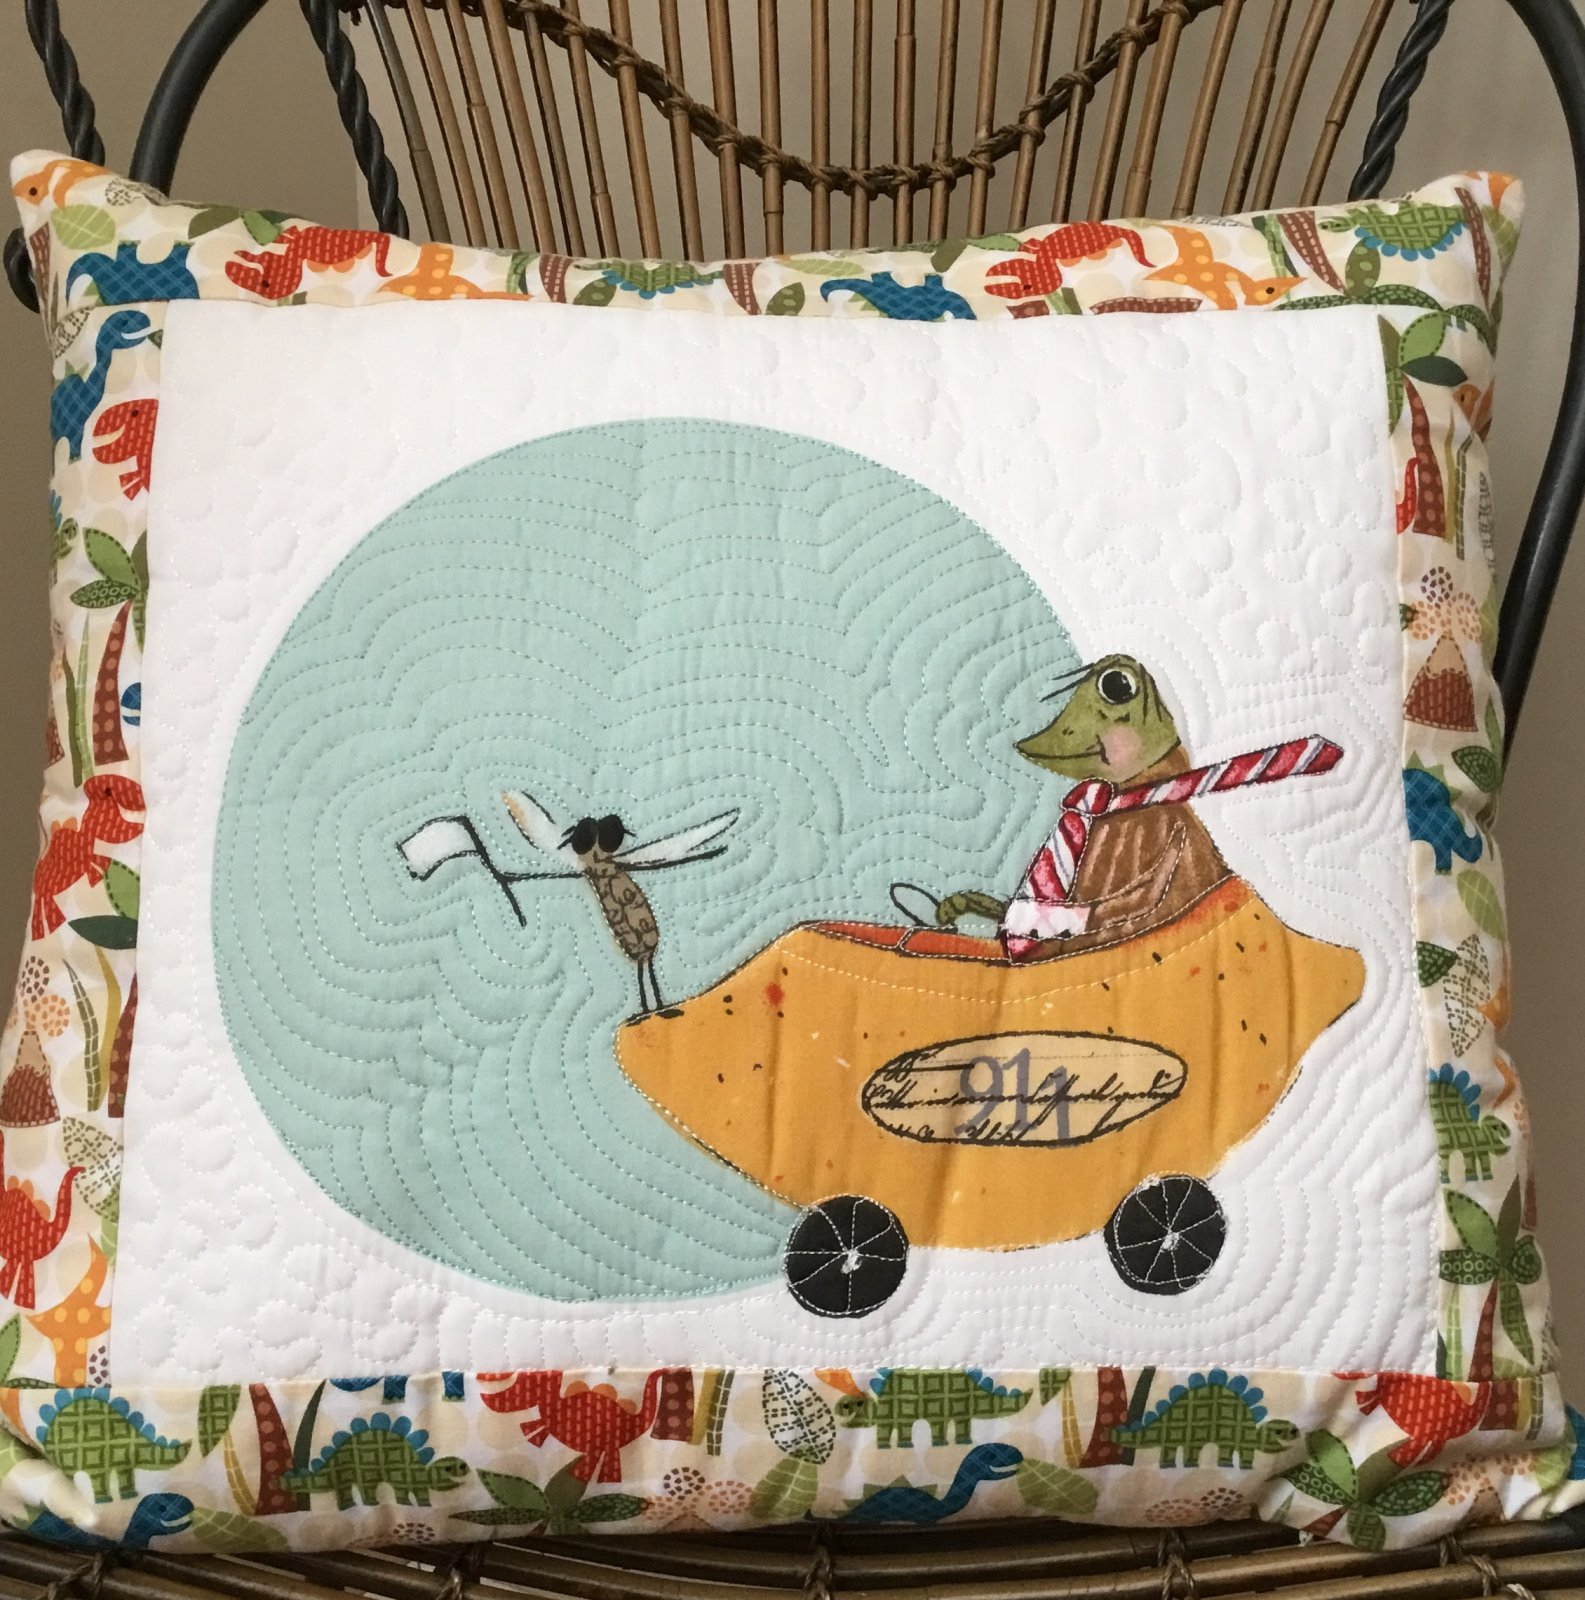 HBH215 Cushion cover